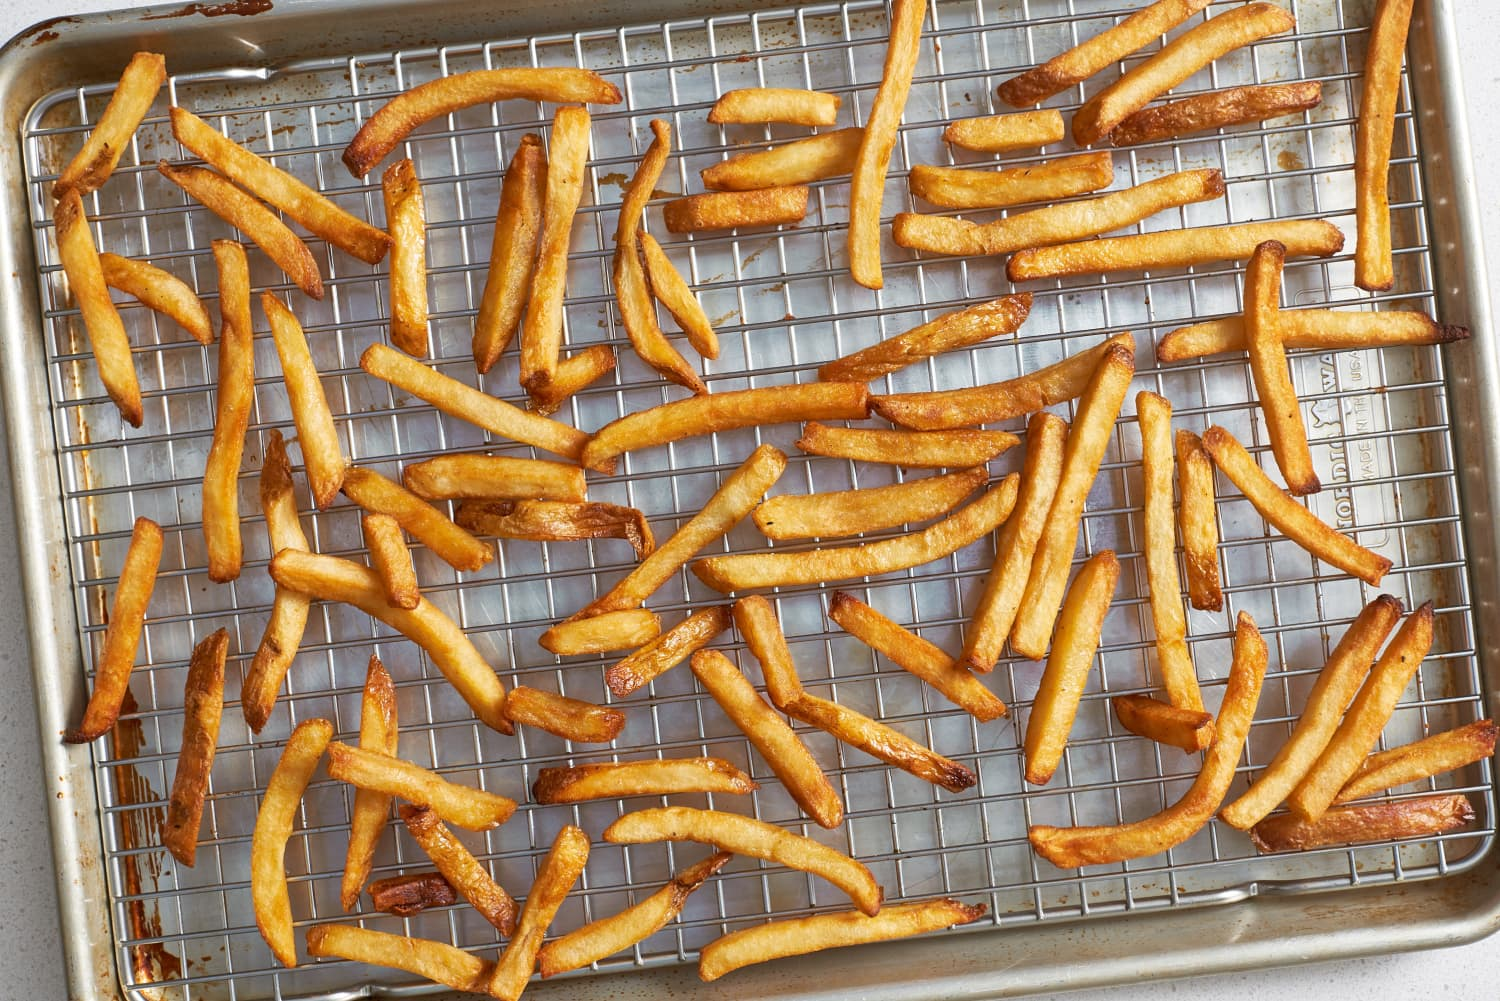 We Tried Every Kind of Frozen French Fries We Could Find and These Are Our Favorites